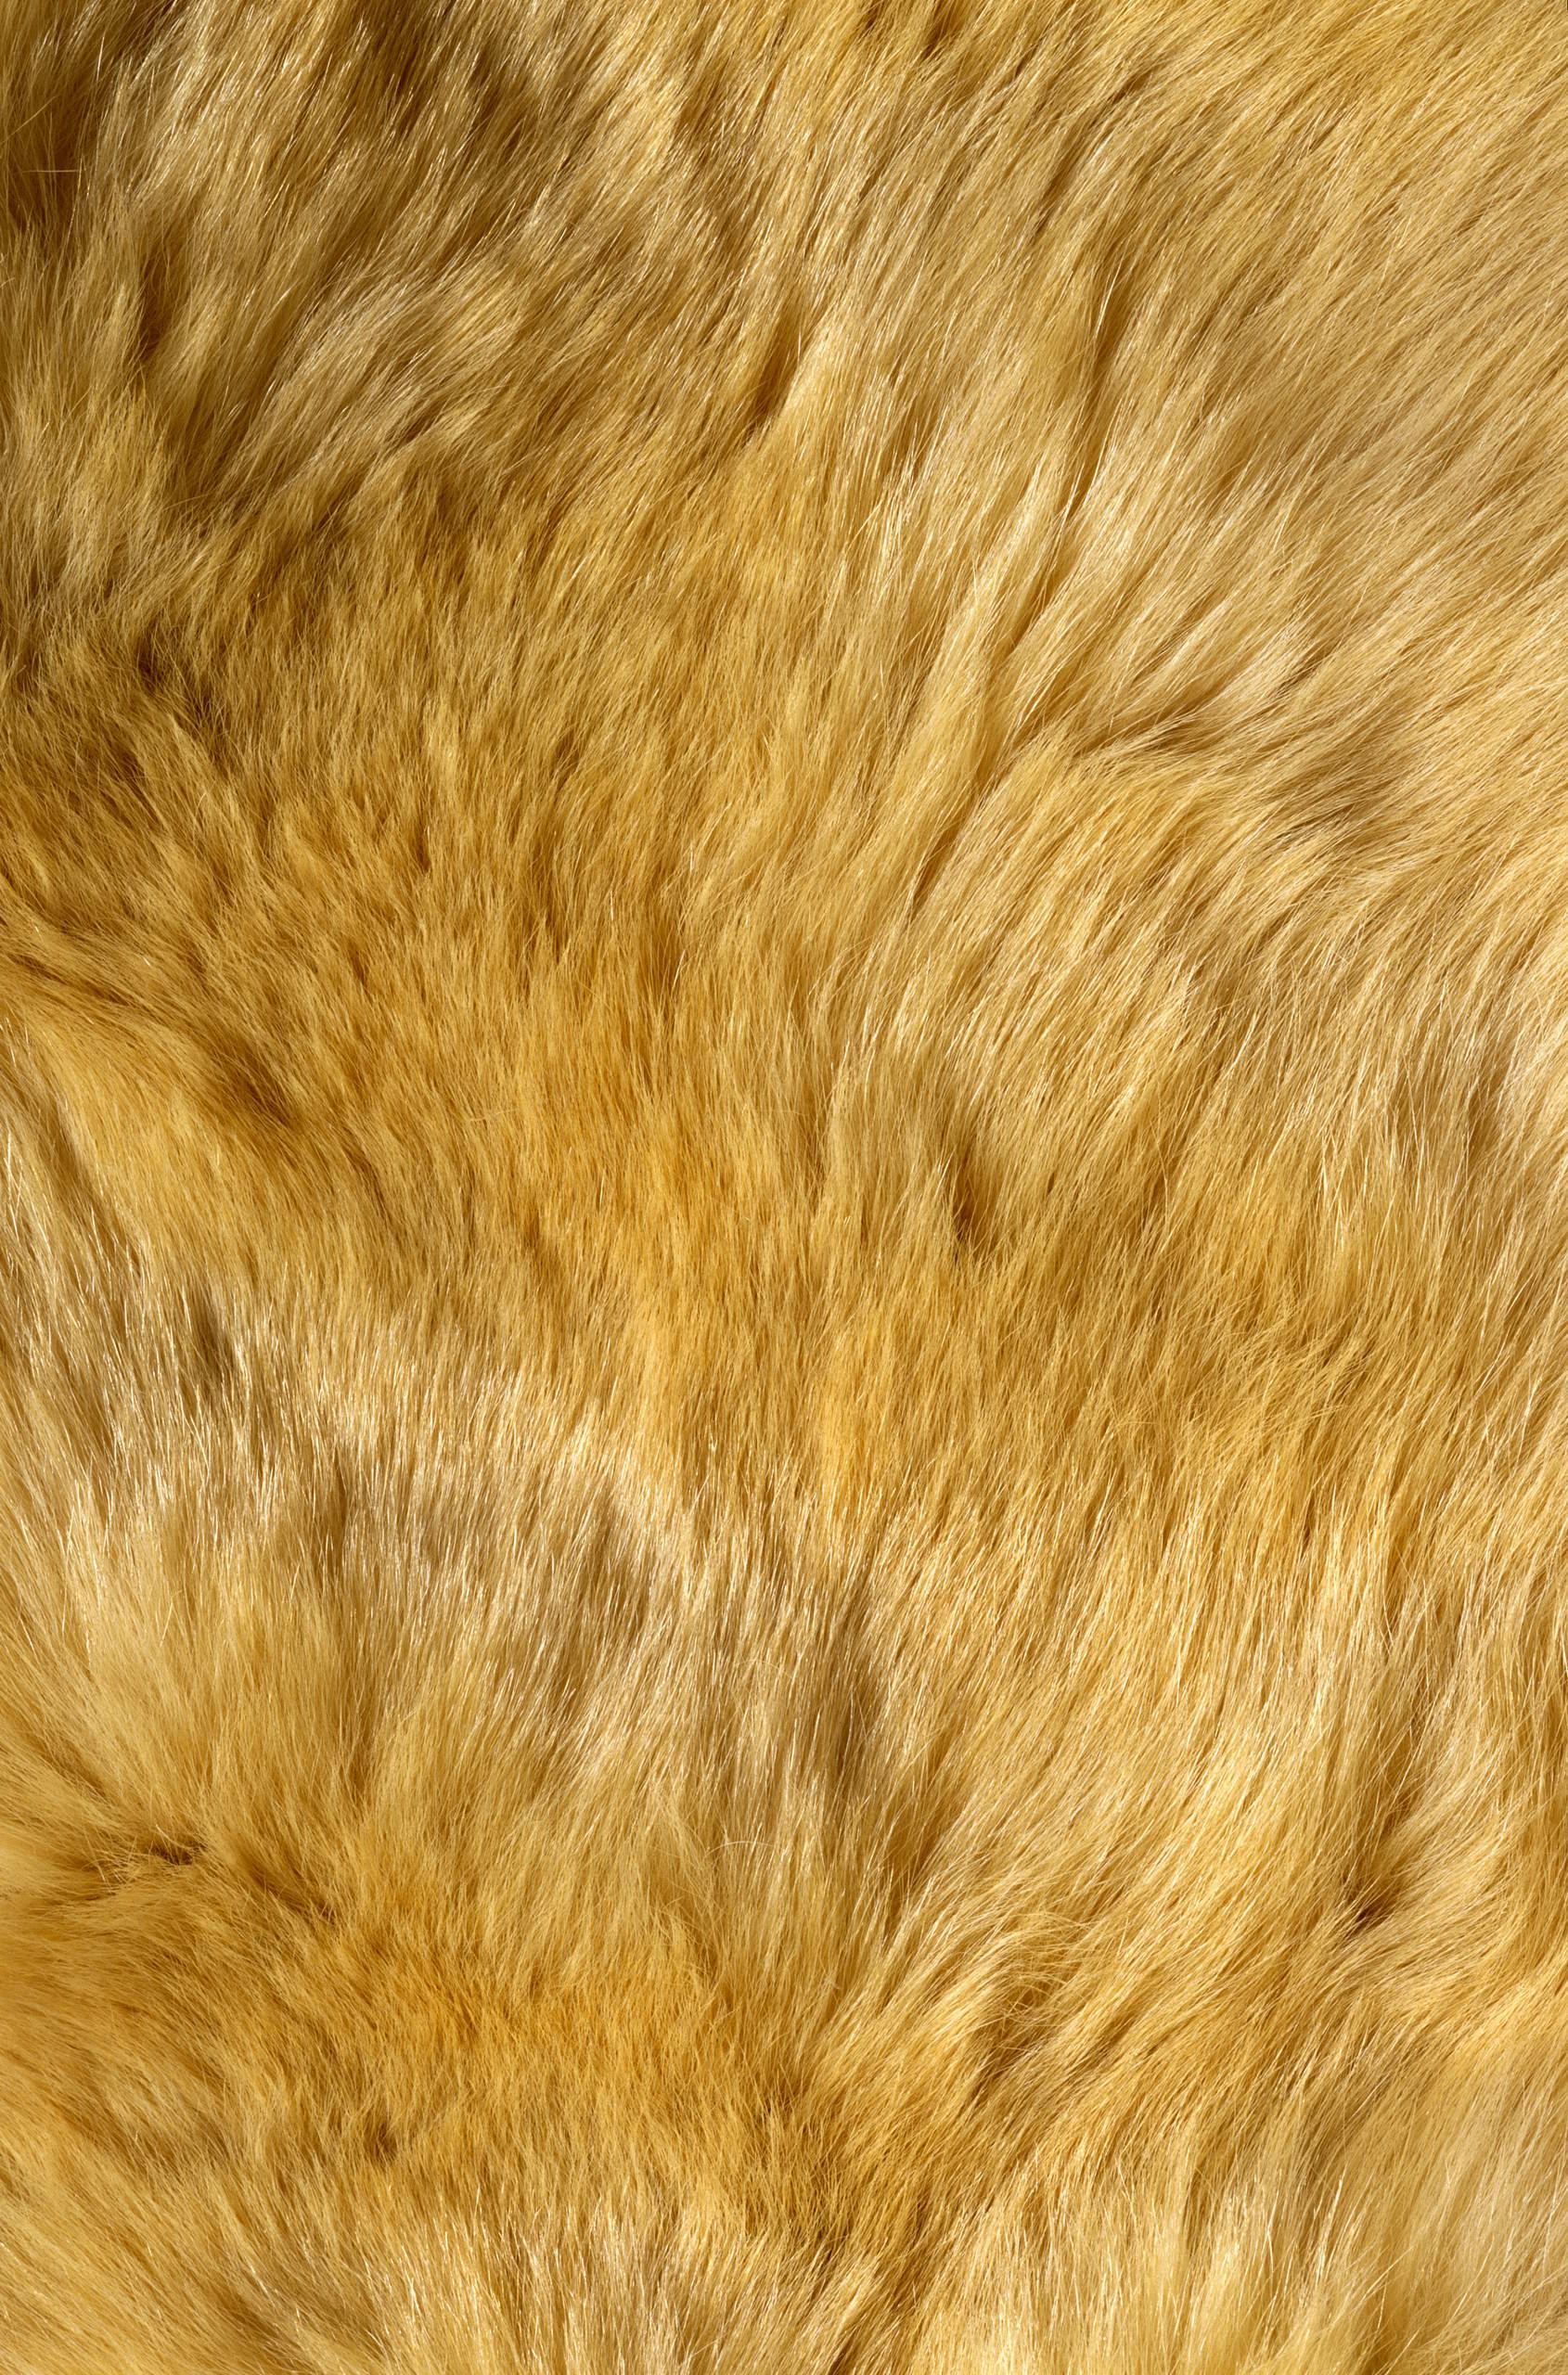 , texture fur, yellow fur texture background, background